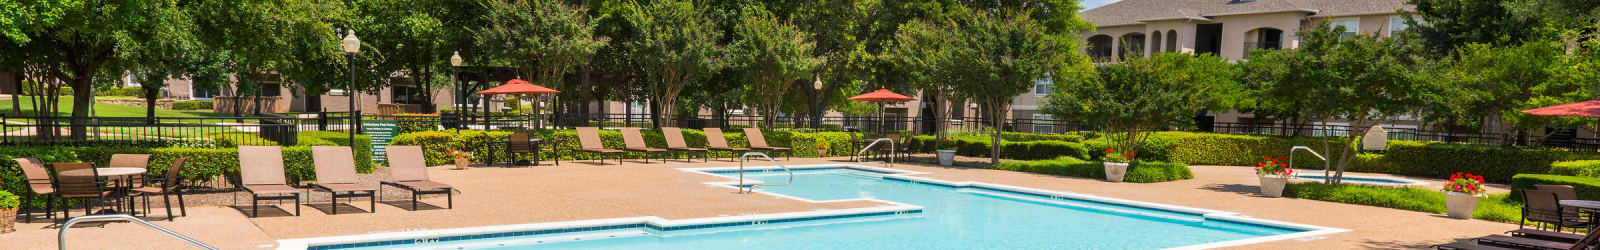 Amenities at Ballantyne Apartments in Lewisville, Texas